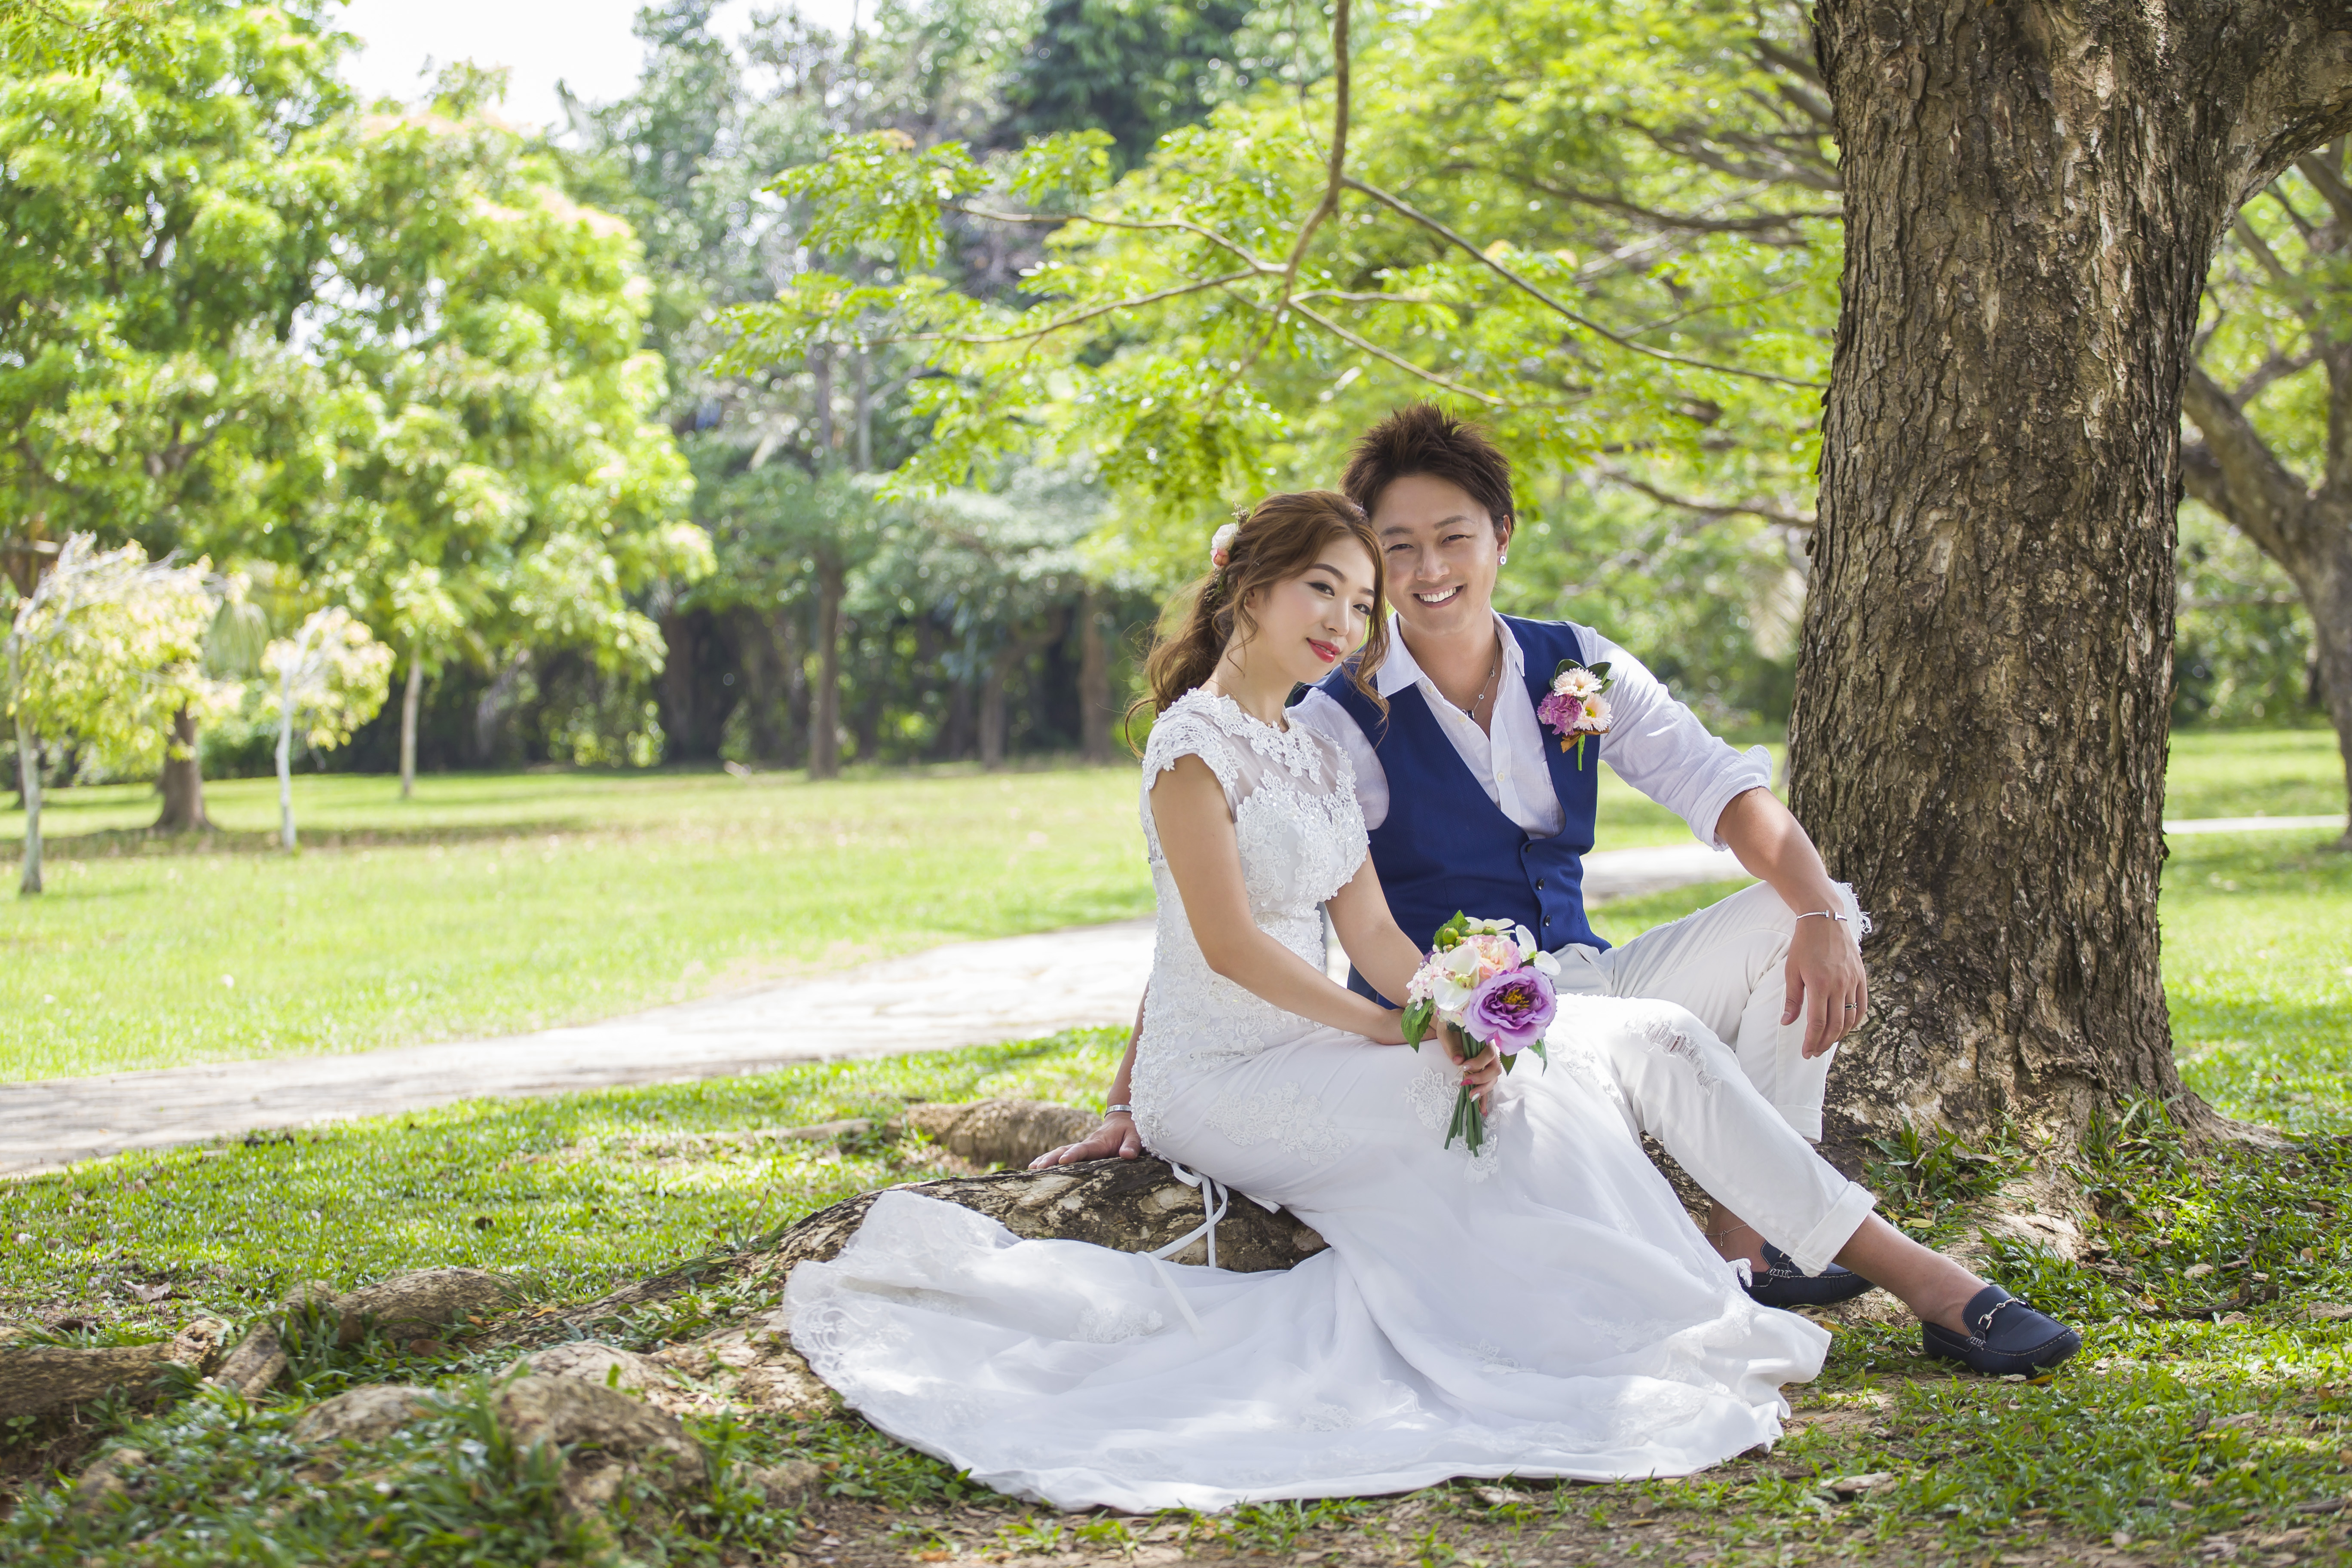 malaysia wedding prewedding photo shooting photo shooting kota kinabalu borneo